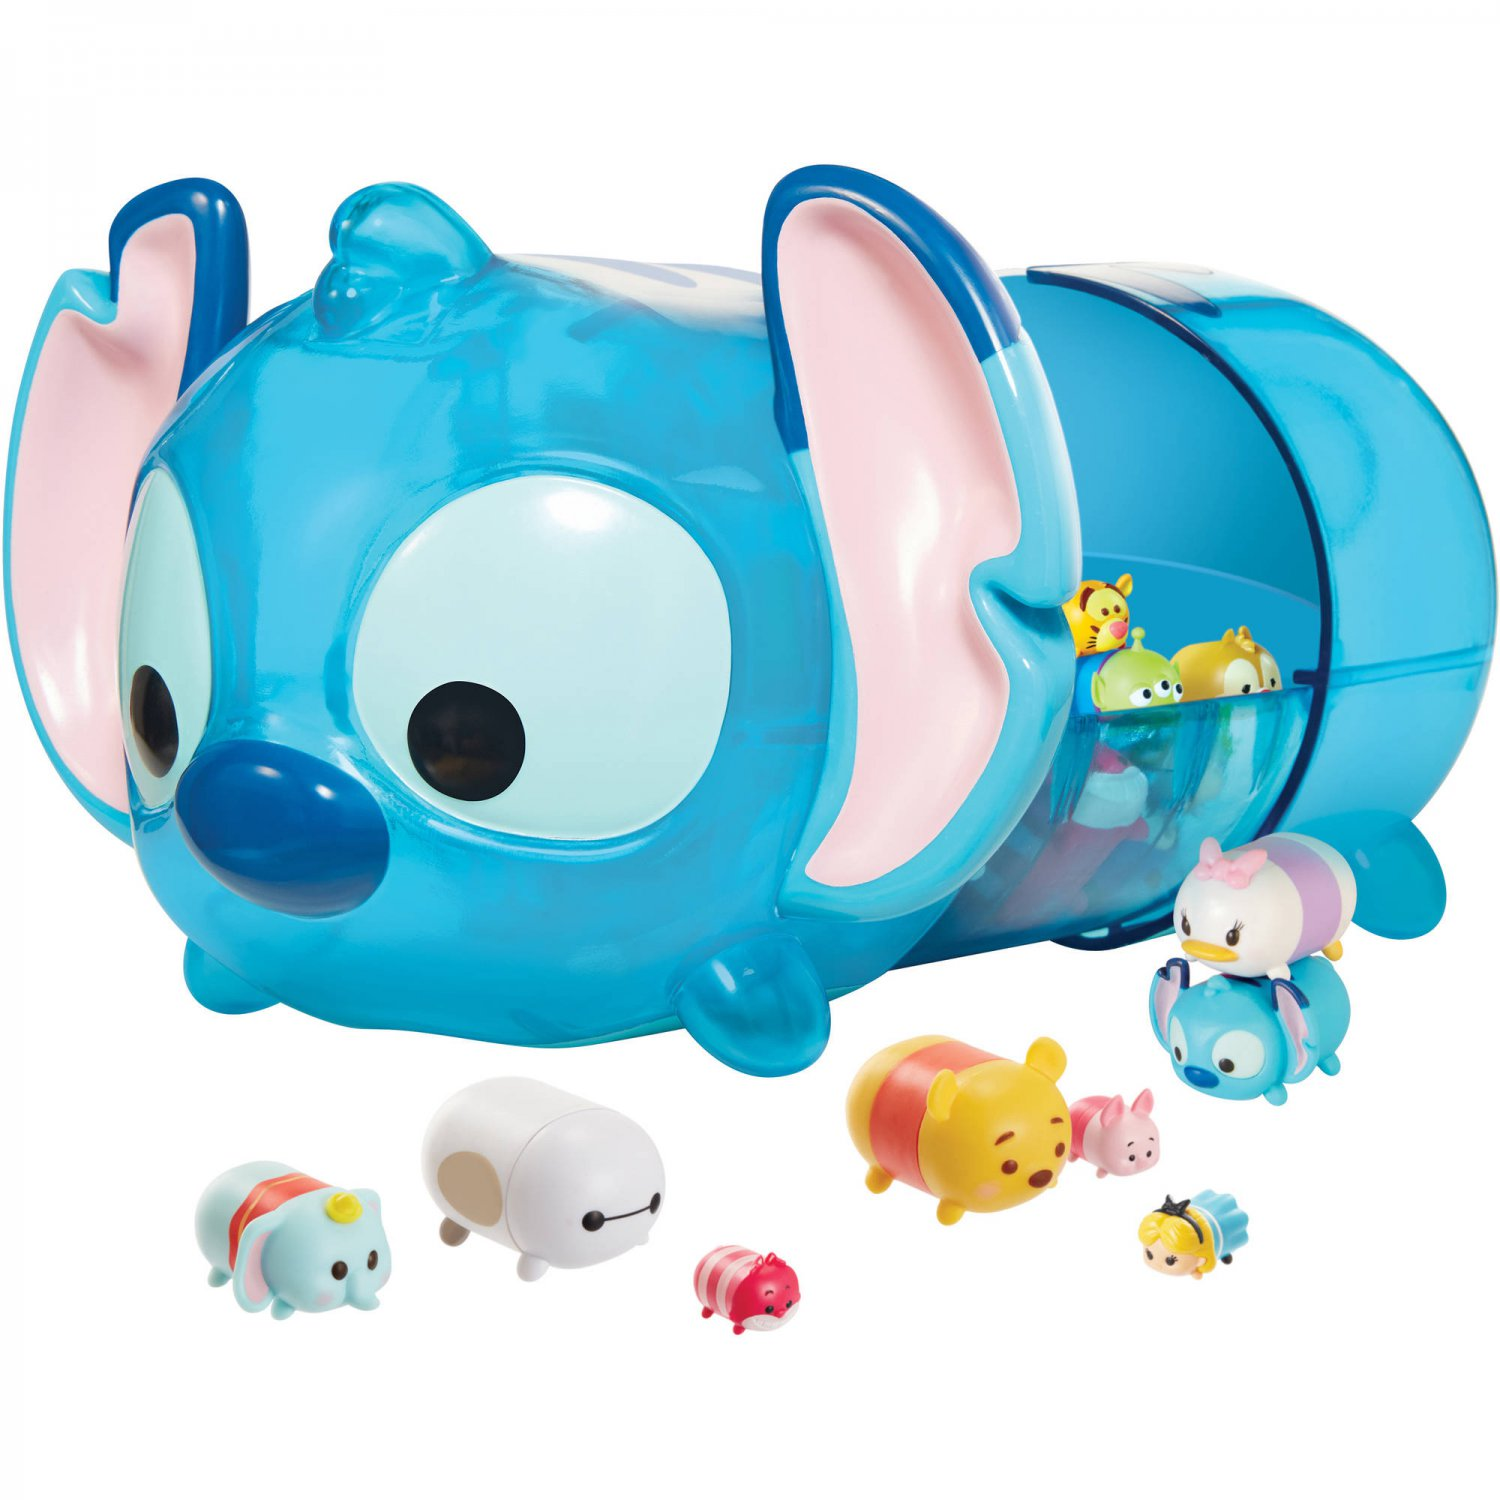 Jakks Pacific Exclusive Disney Tsum Tsum Stitch Case w/1 Large Crystal Figure (5 Pieces) - #09558